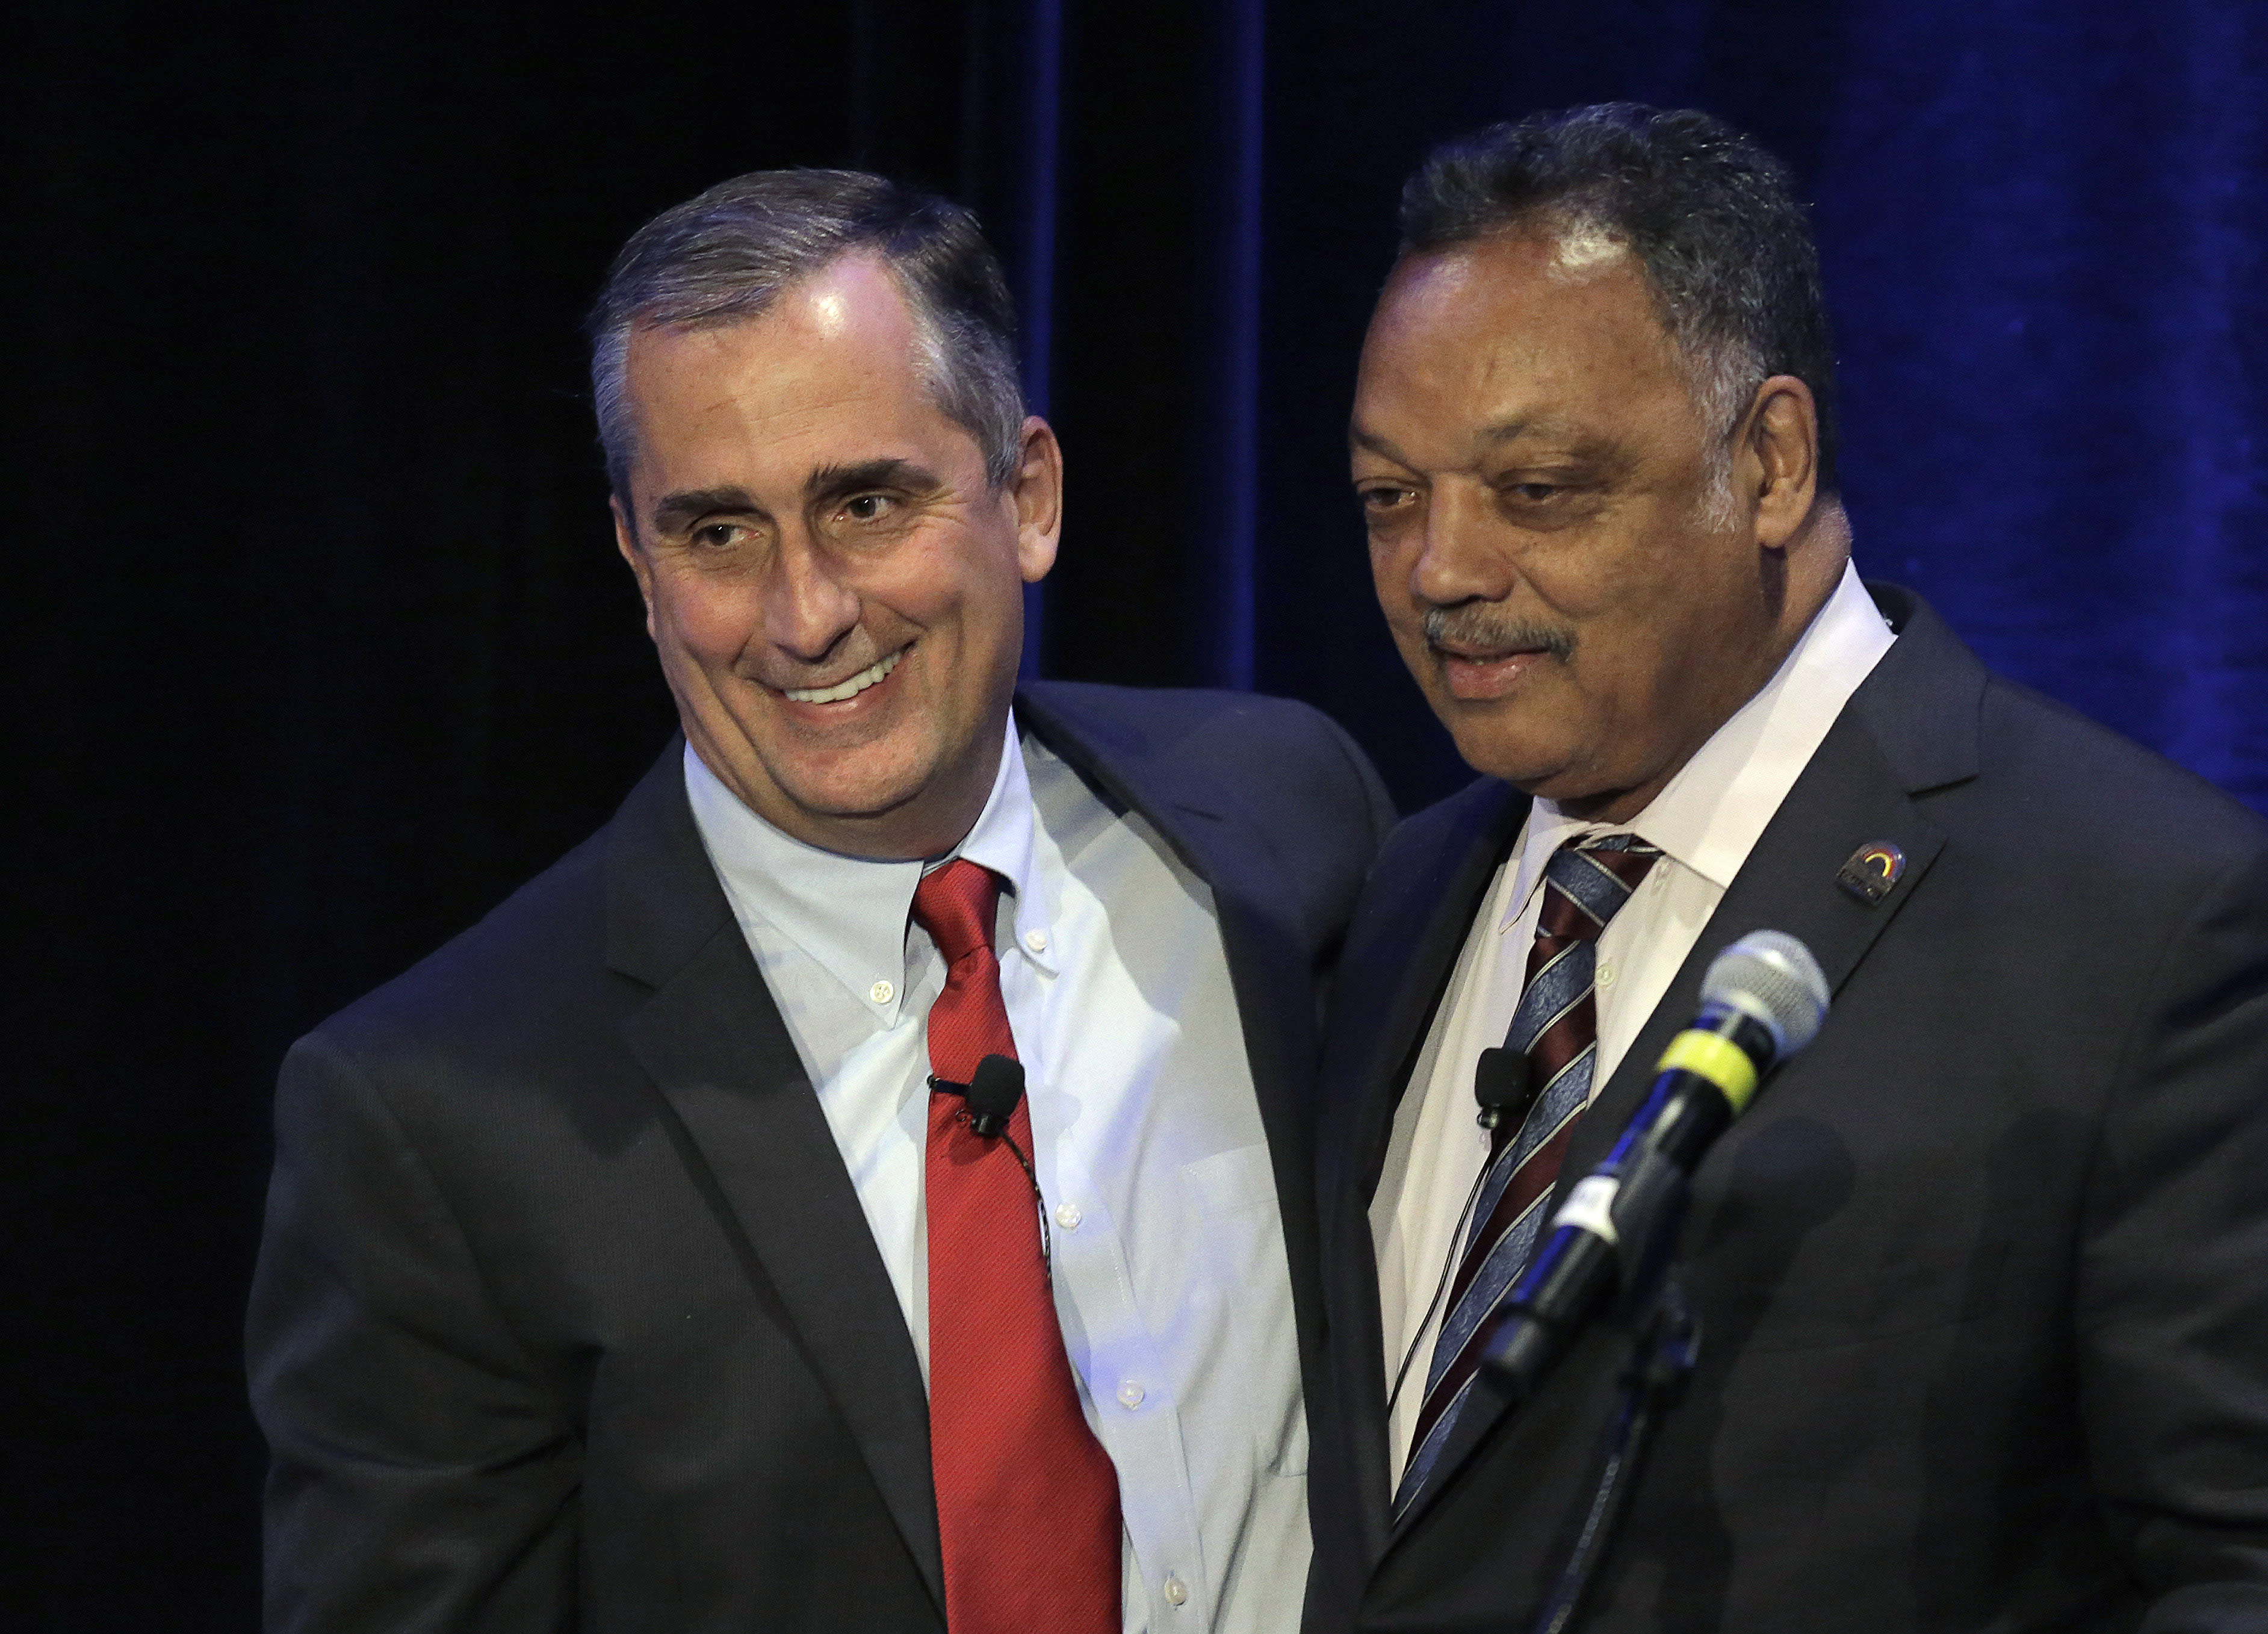 Jesse Jackson keeps pressure on Silicon Valley to diversify